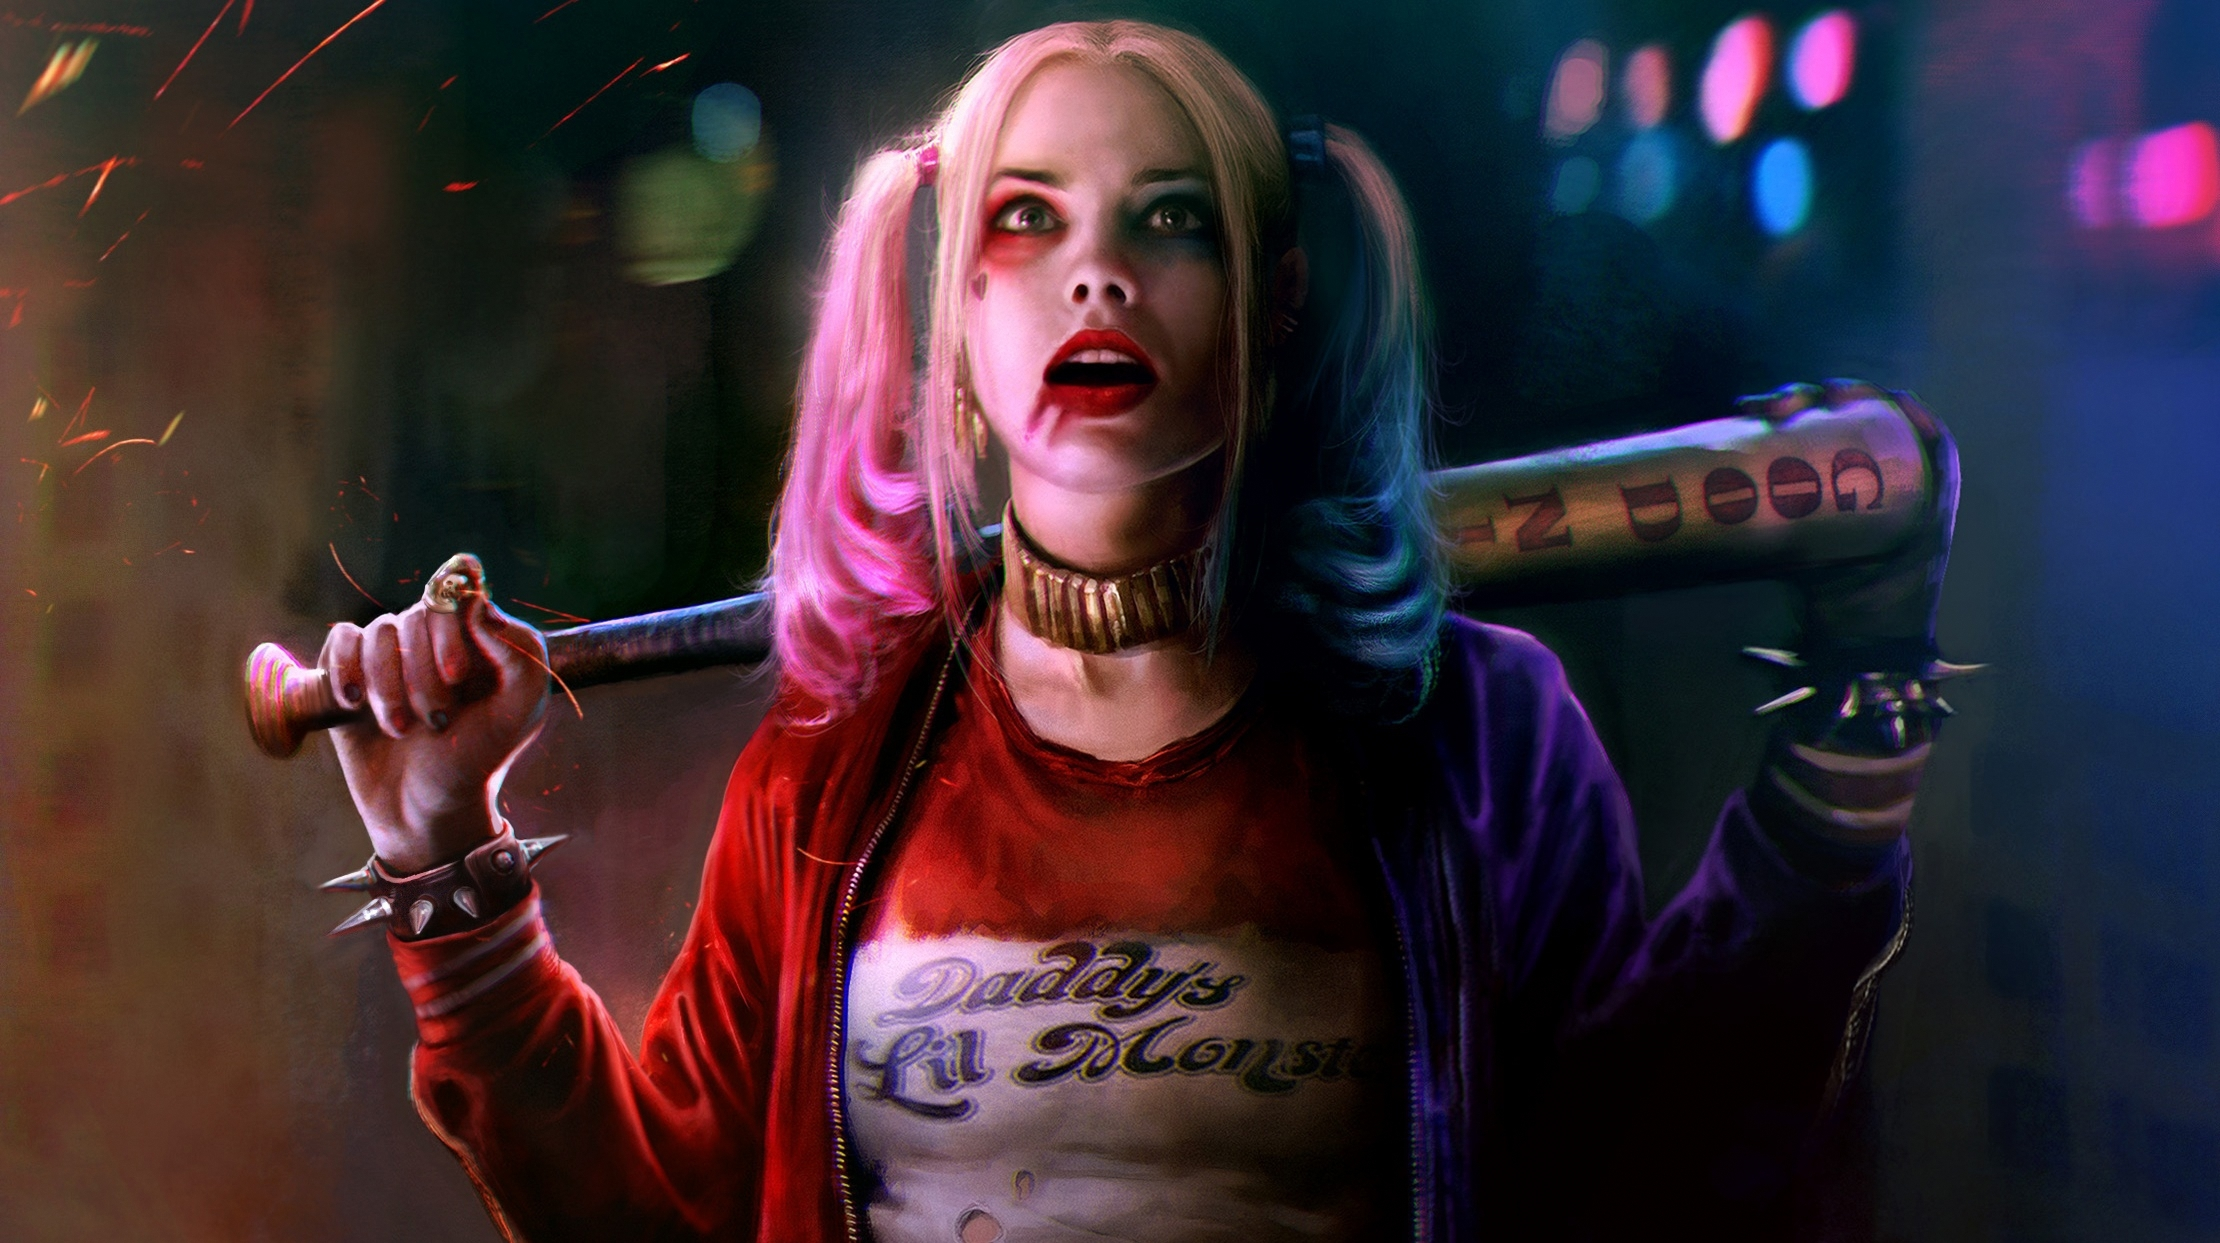 Harley Quinn Margot Robbie Suicide Squad HD Wallpaper